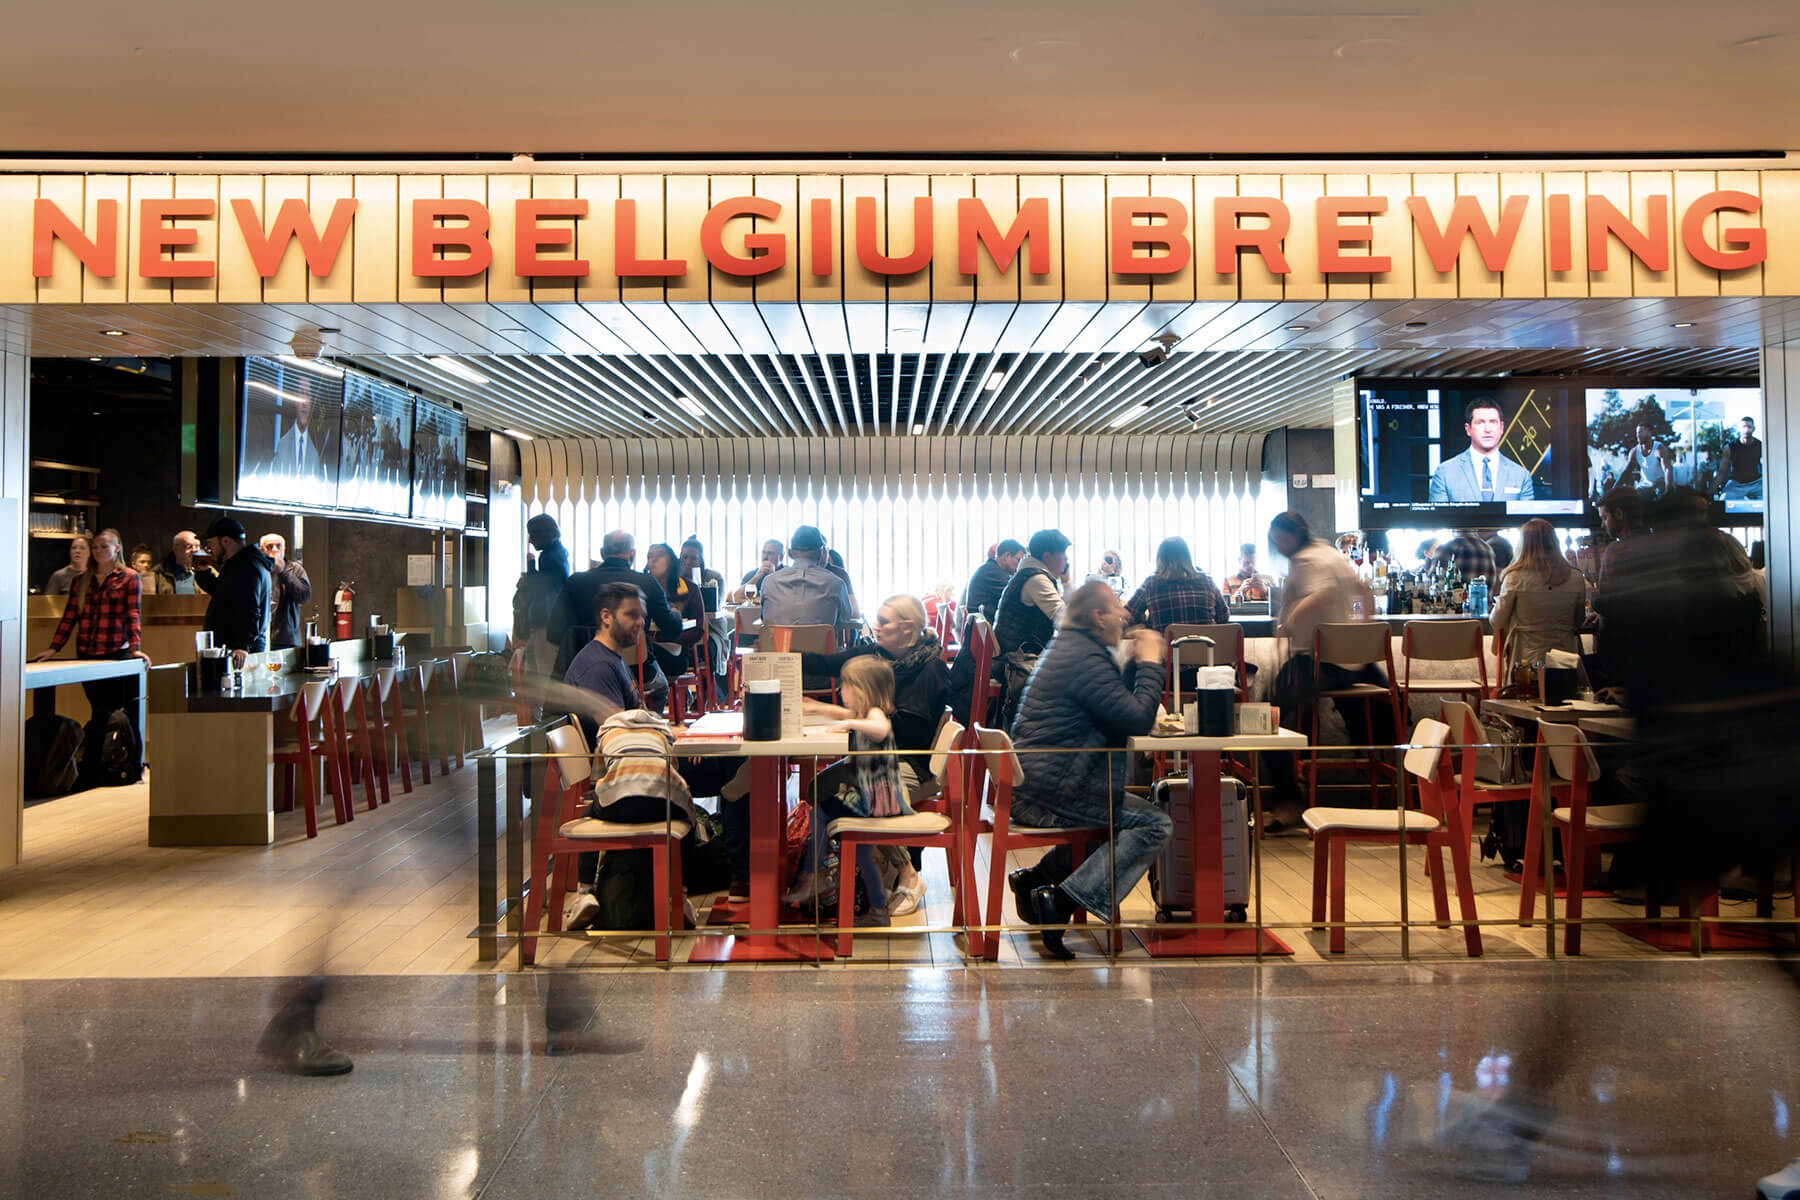 The New Belgium Brewing Company taproom inside the Denver International Airport.